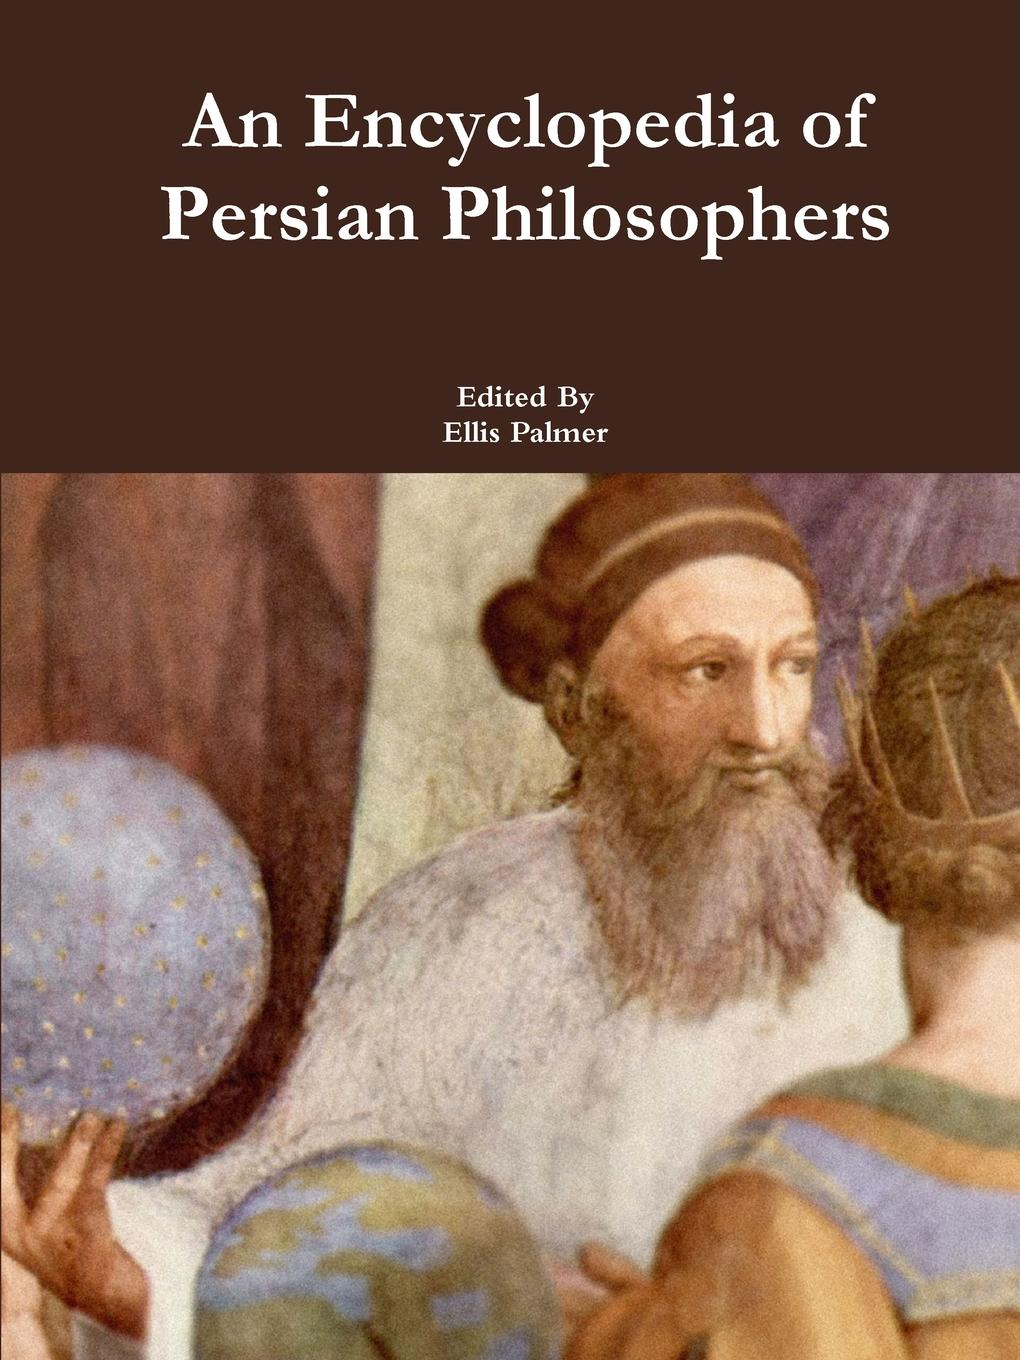 Ellis Palmer An Encyclopedia of Persian Philosophers a collection of astronomy articles by frank schlesinger